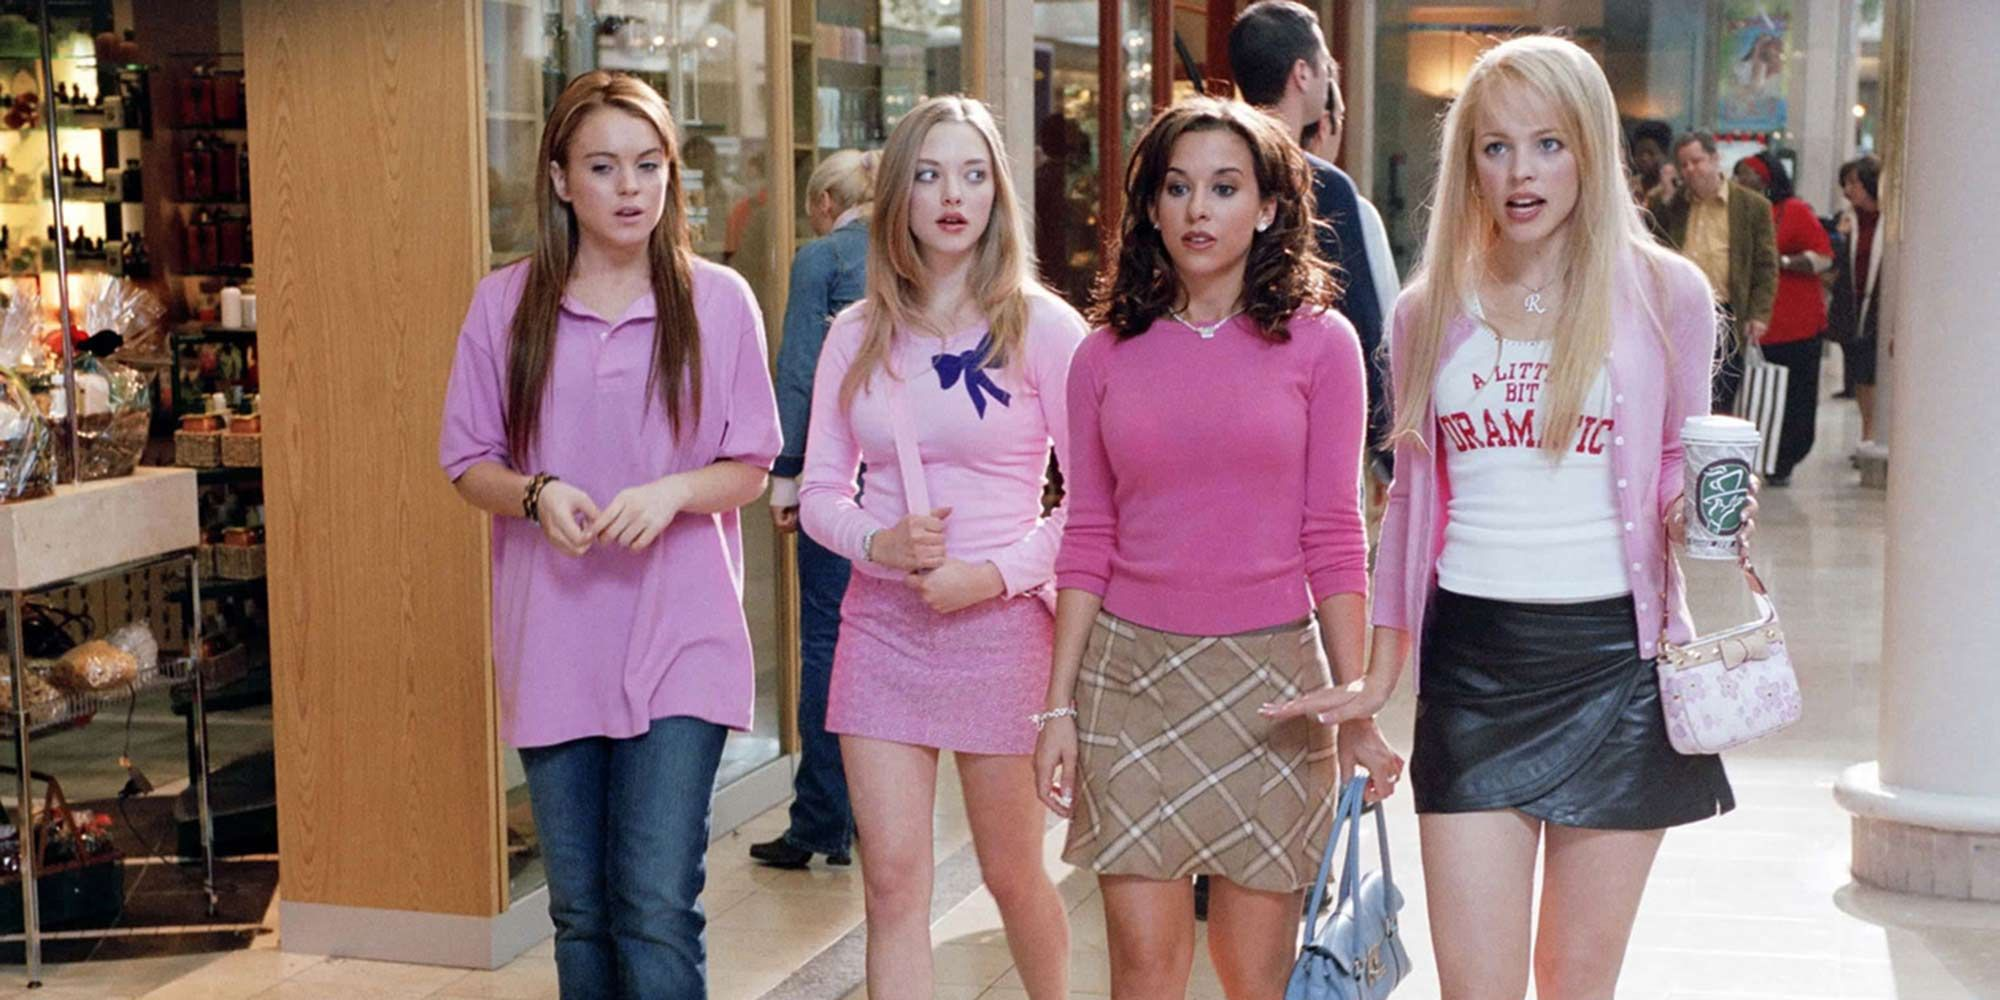 Cady and the Plastics (in their friendship) walk in a mall (Mean Girls).